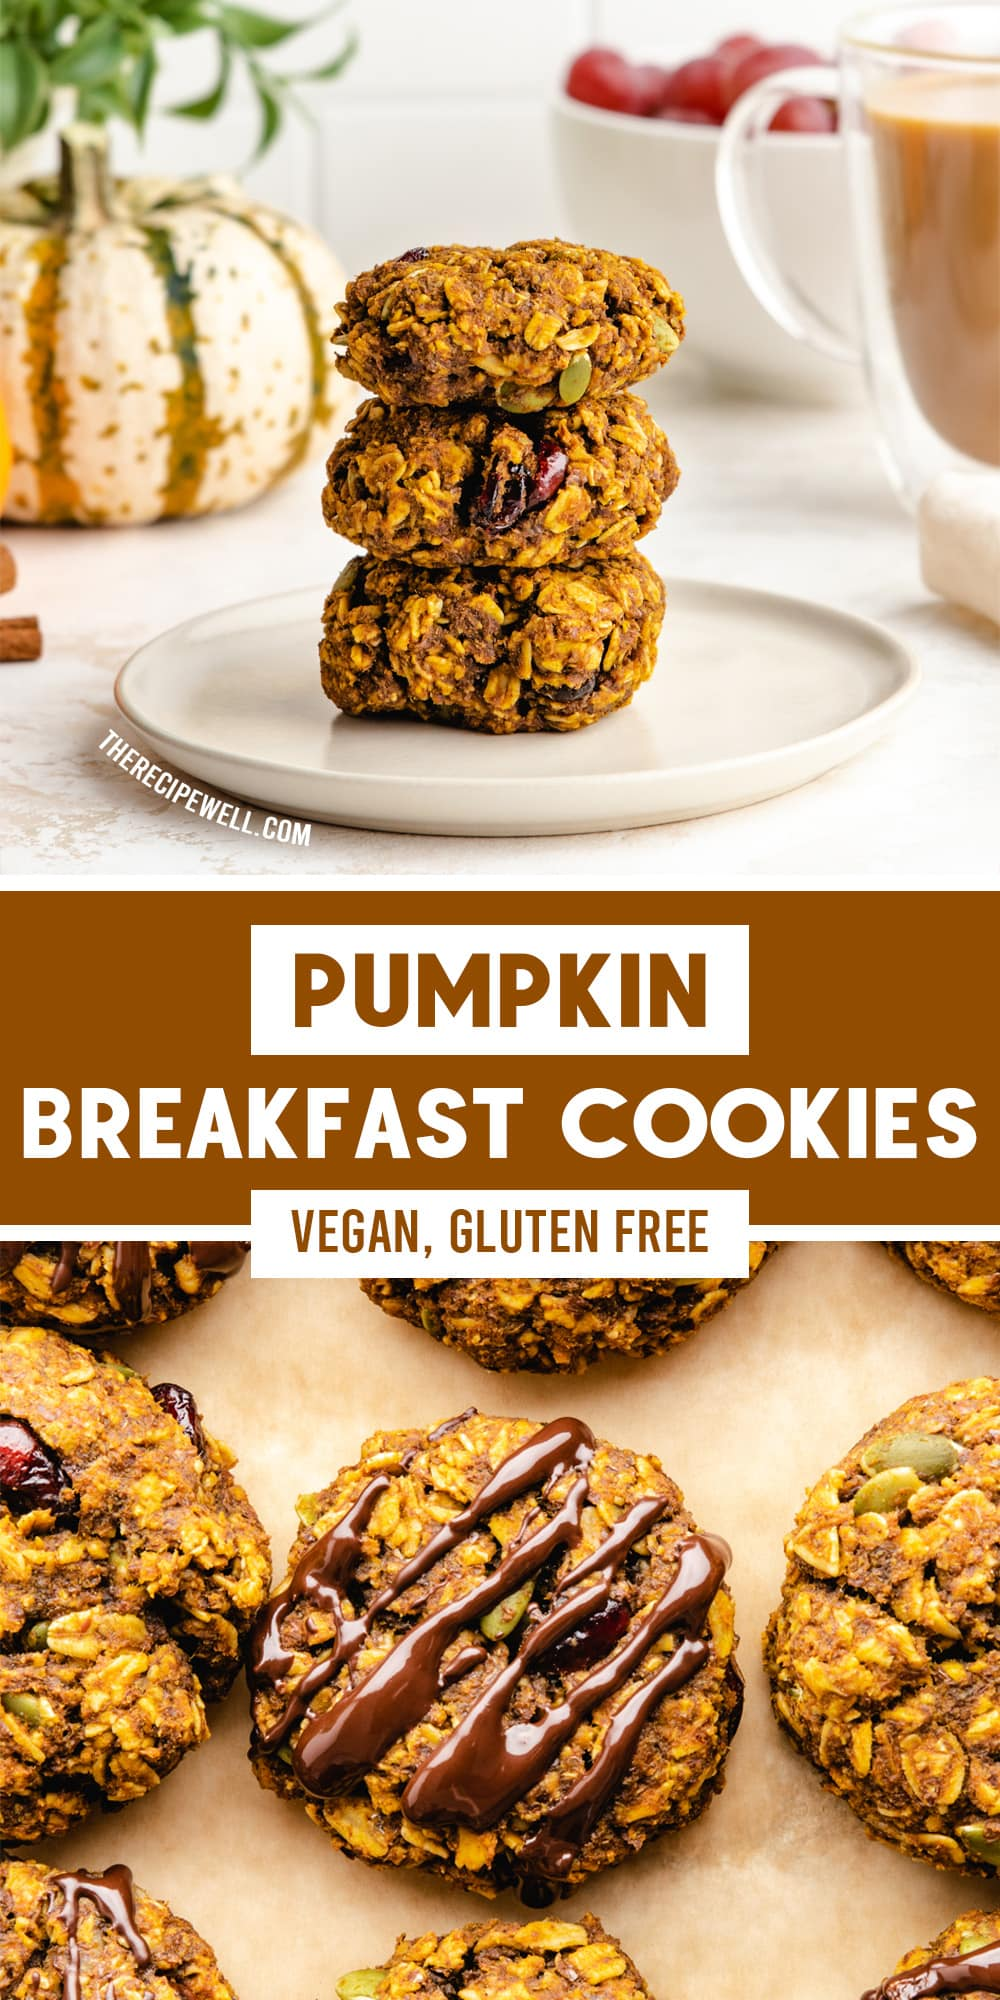 Enjoy cookies for breakfast with these vegan and gluten-free Pumpkin Breakfast Cookies! Made with rolled oats and lightly sweetened with maple syrup, they are a delicious on-the-go breakfast or snack. Perfect for meal prep in the fall season! via @therecipewell